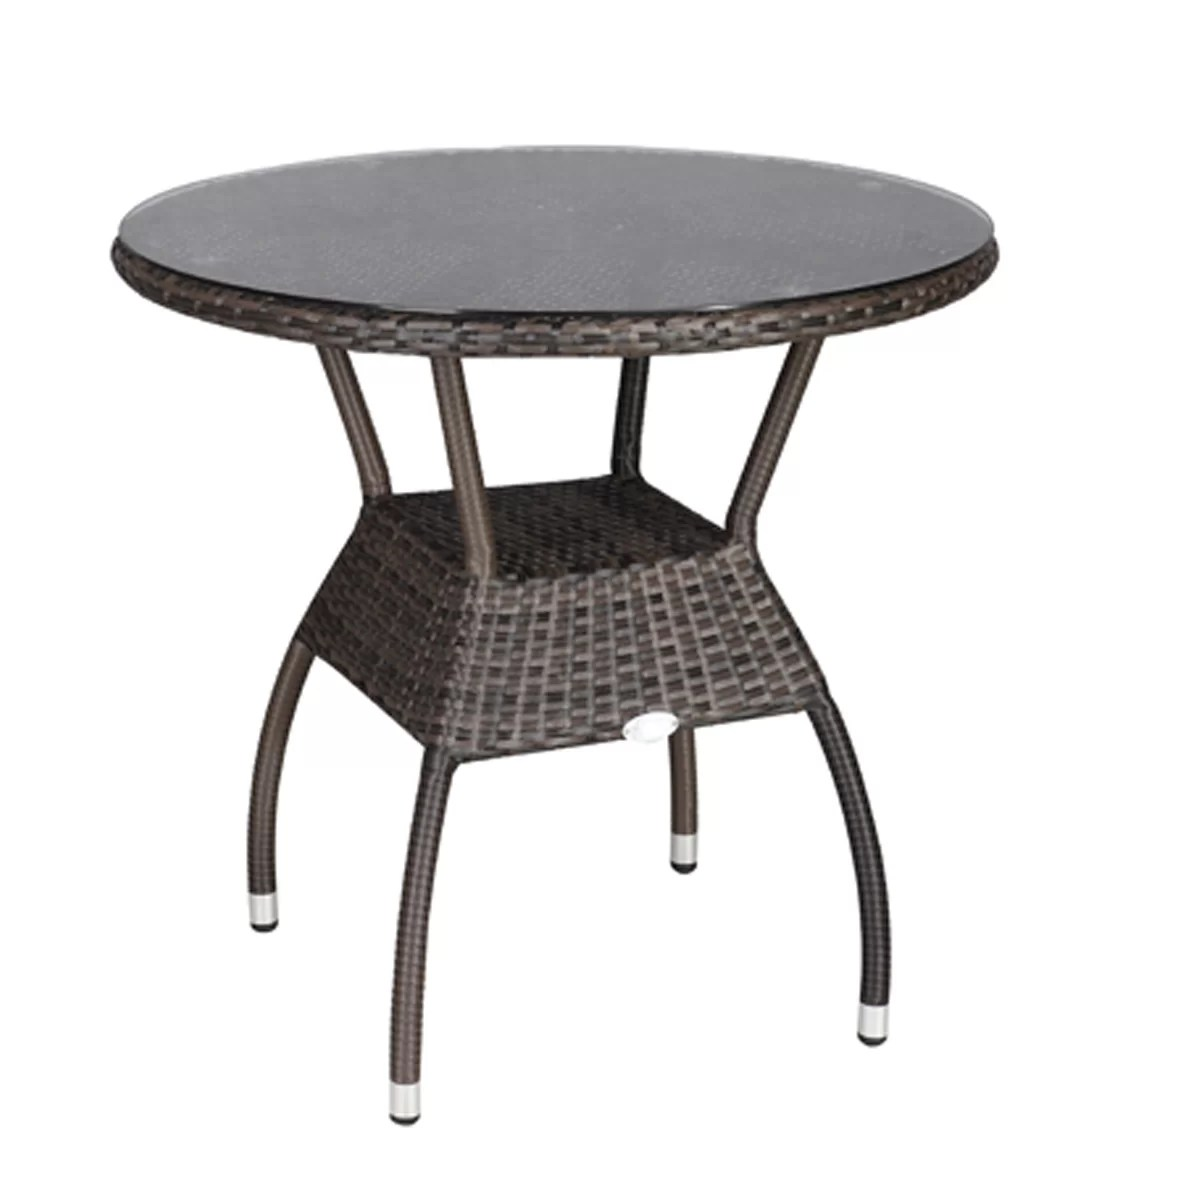 30 Elegant Wayfair Patio Furniture